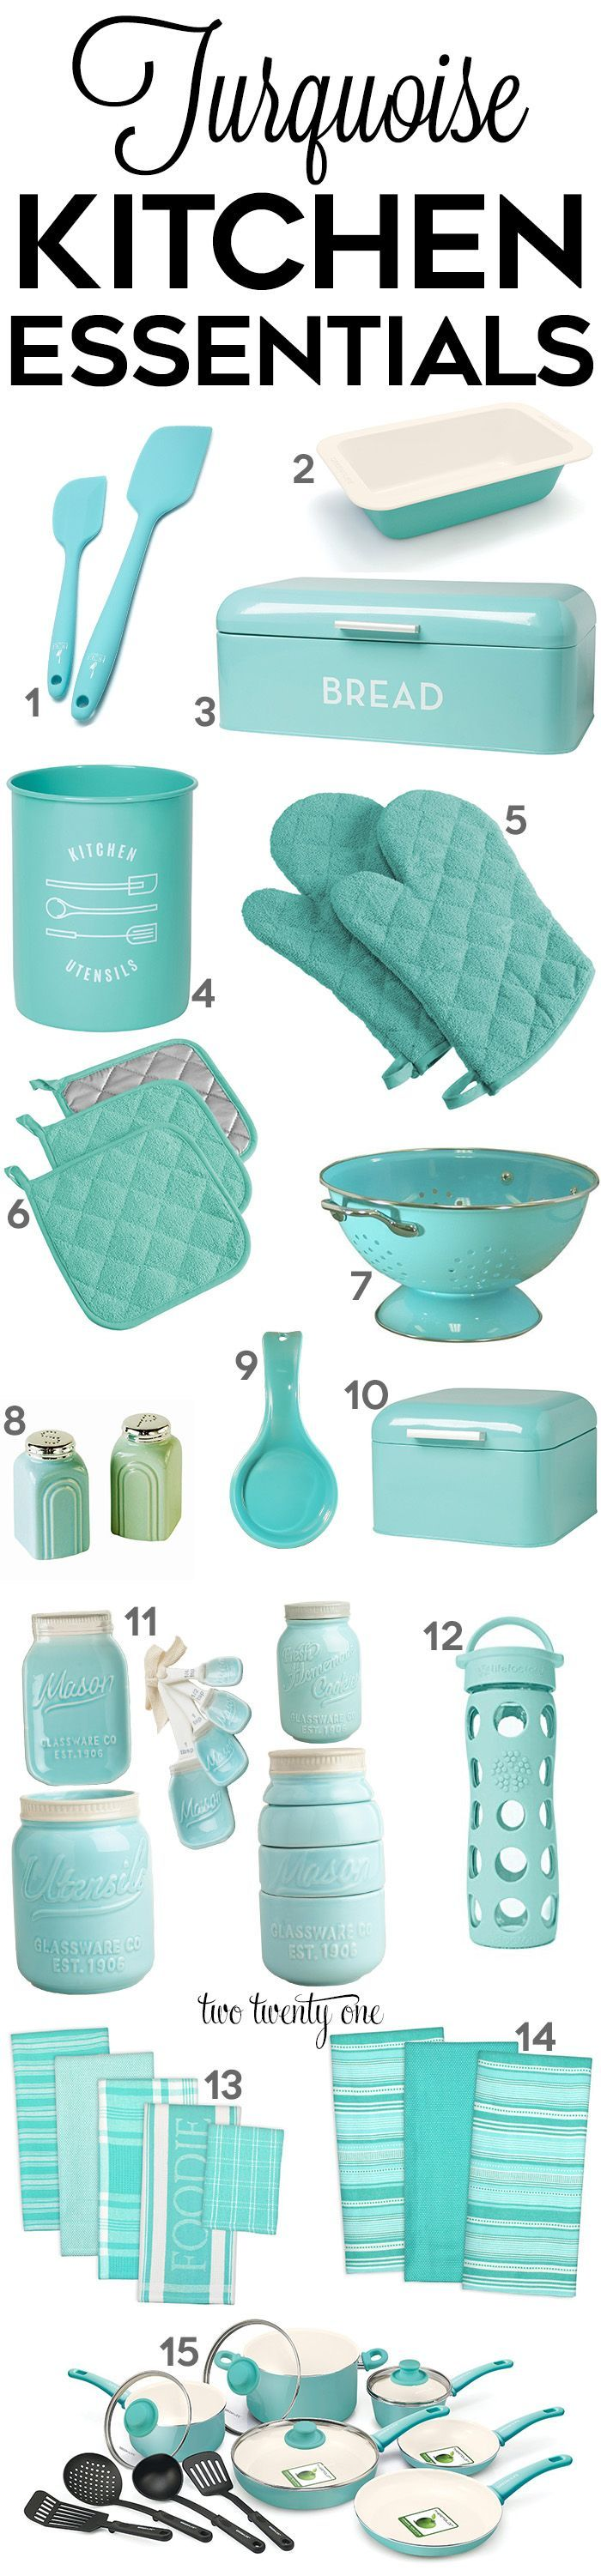 Turquoise Kitchen Decor 25 Best Ideas About Turquoise Kitchen Decor On Pinterest Teal